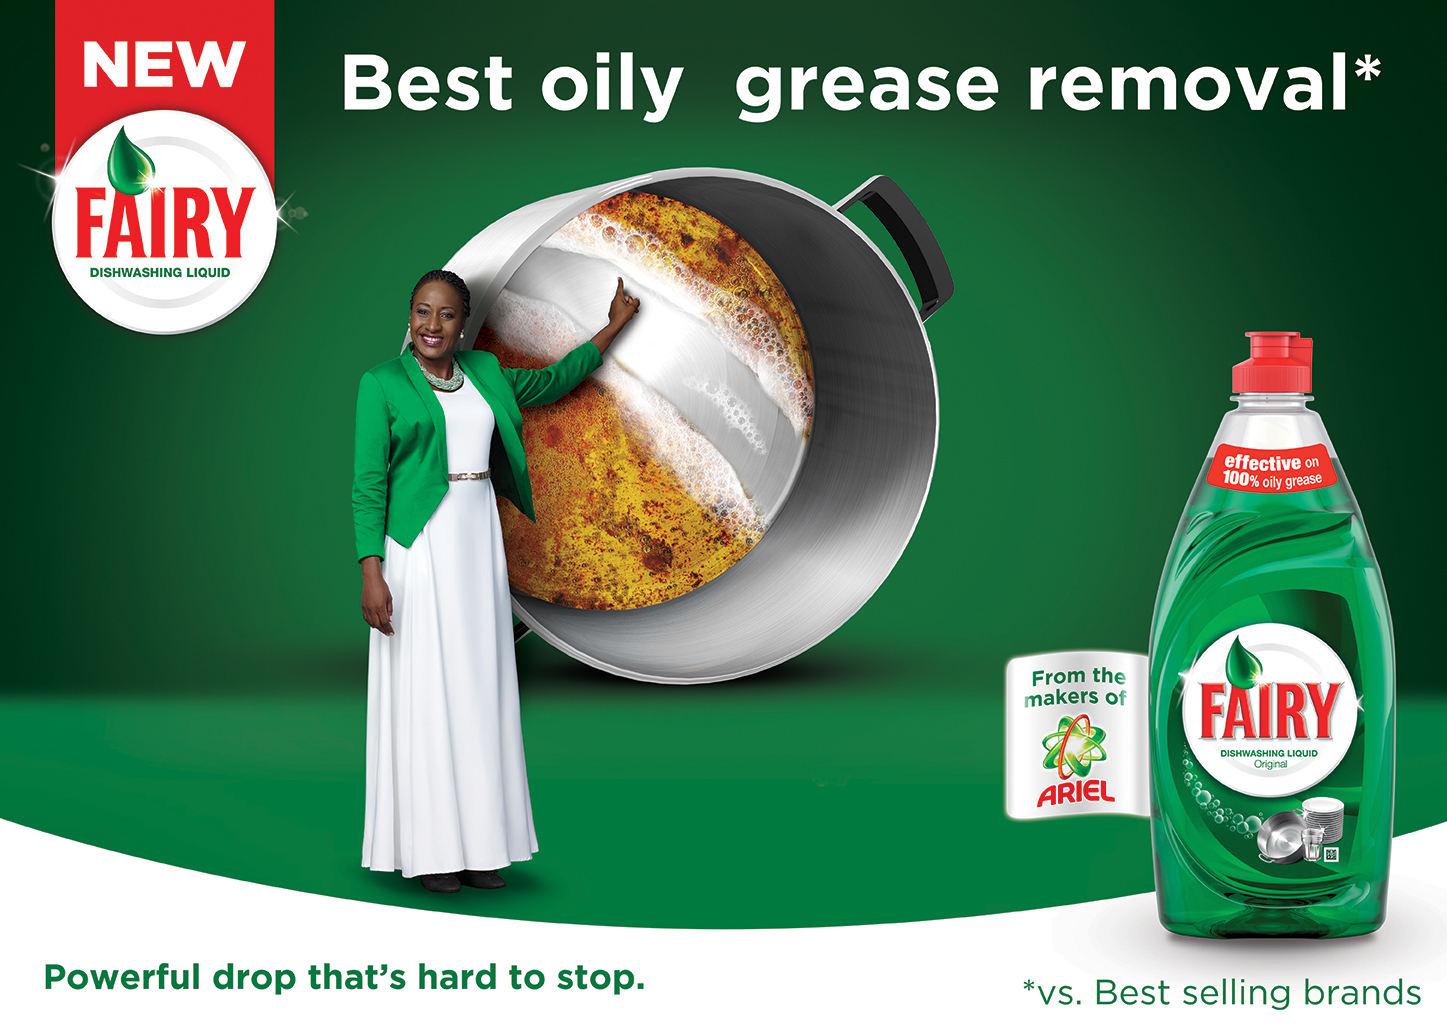 New Fairy dishwashing liquid impresses the toughest critics